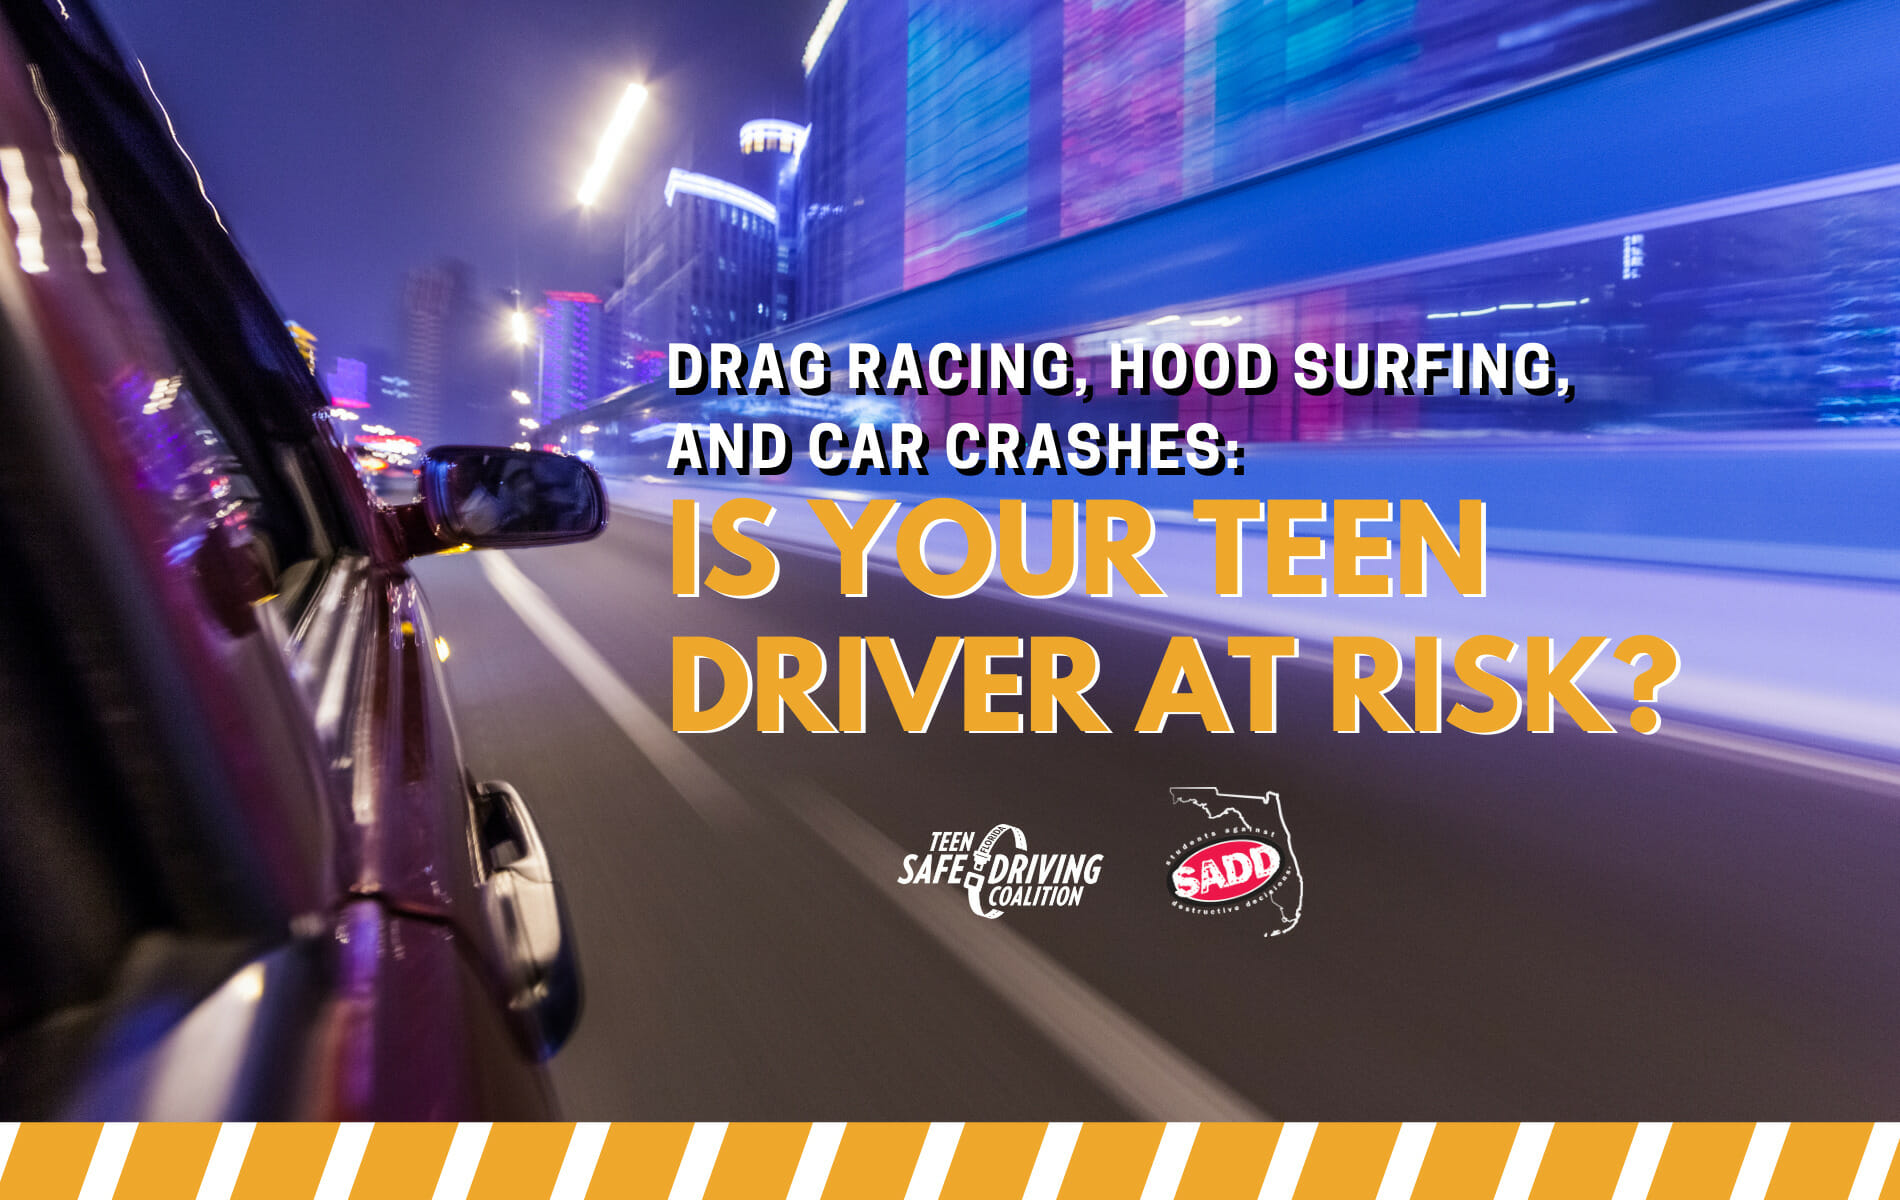 Drag Racing, Hood Surfing, and Car Crashes: Is Your Teen Driver at Risk?